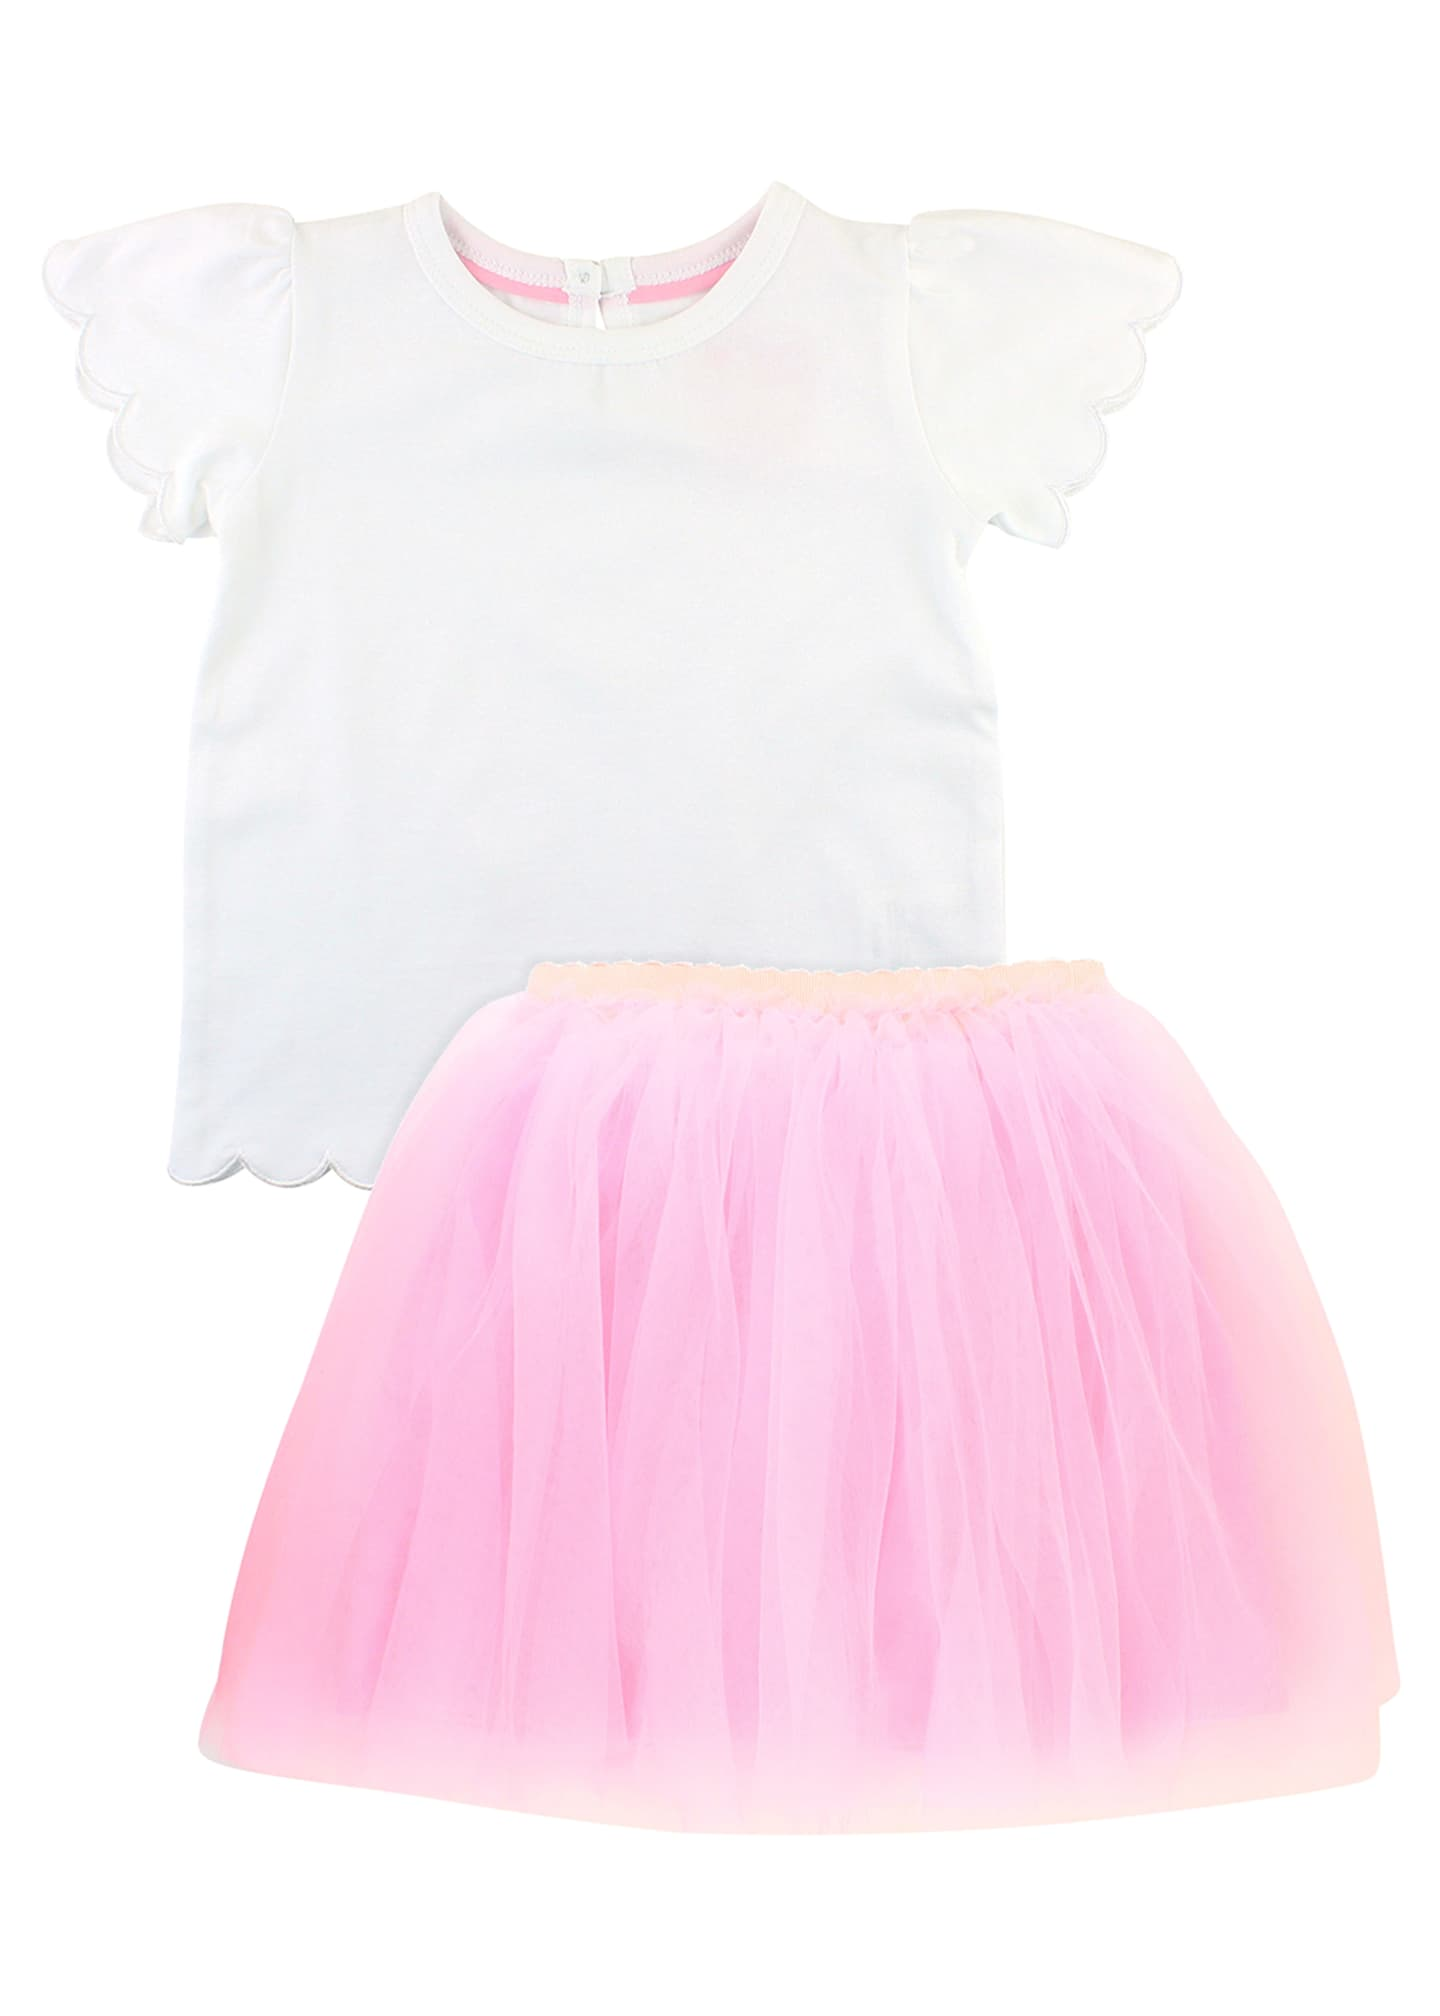 RuffleButts Scallop Tee w/ Tulle Skirt, Size 3M-3T